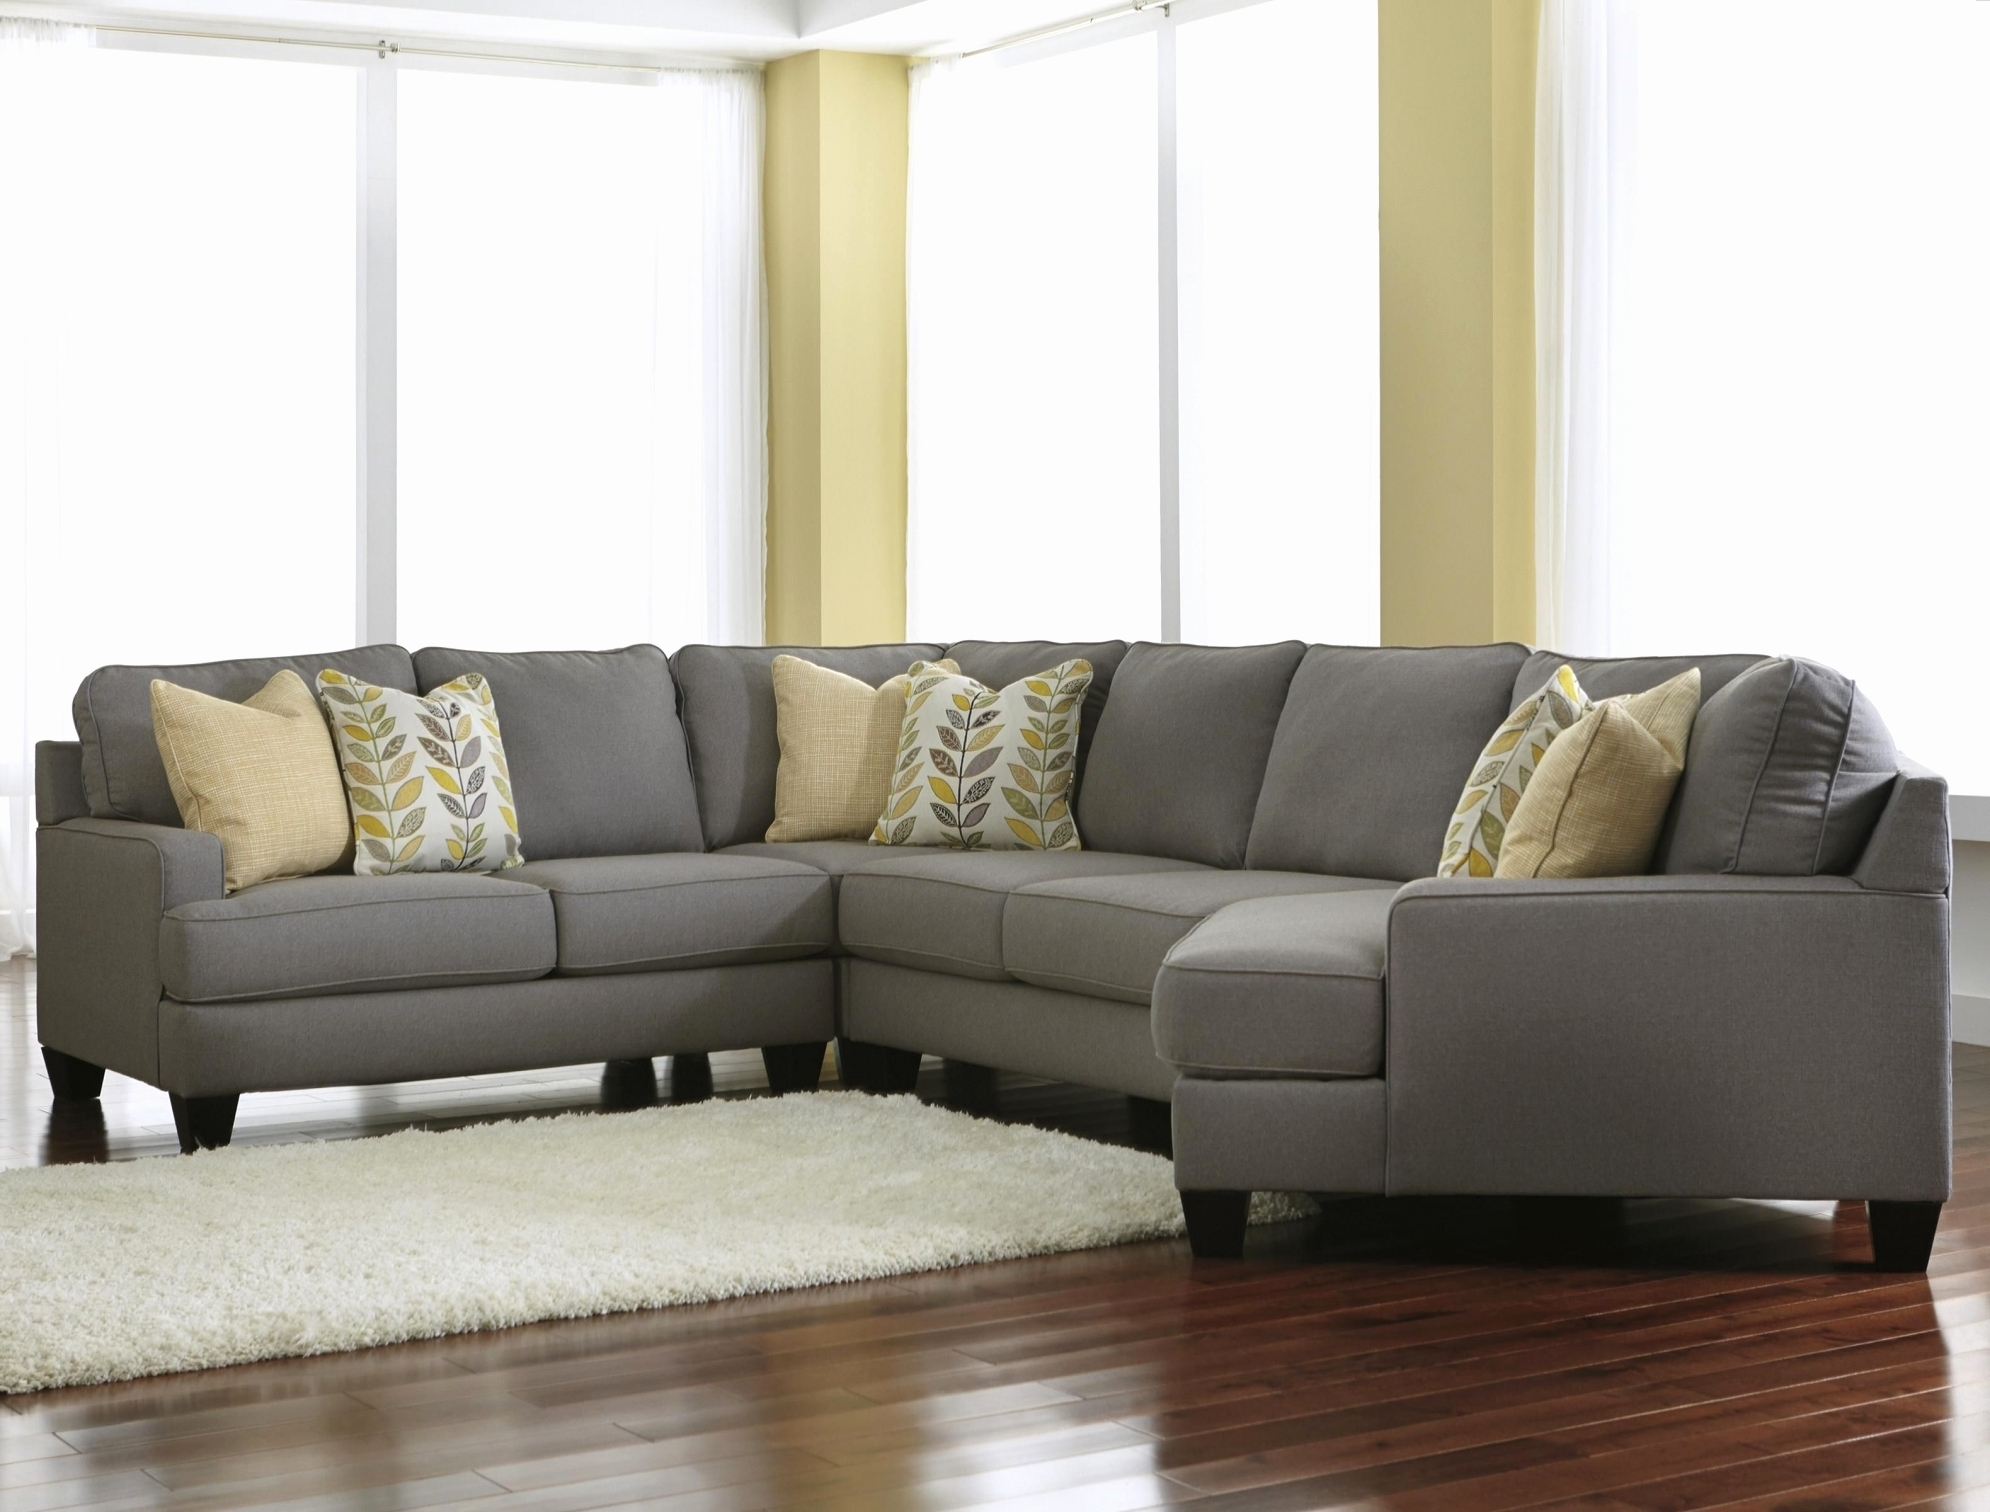 32 Lovely Sectional Sofas Clearance Photos – Sectional Sofa Design For Most Recently Released Nashua Nh Sectional Sofas (View 1 of 15)